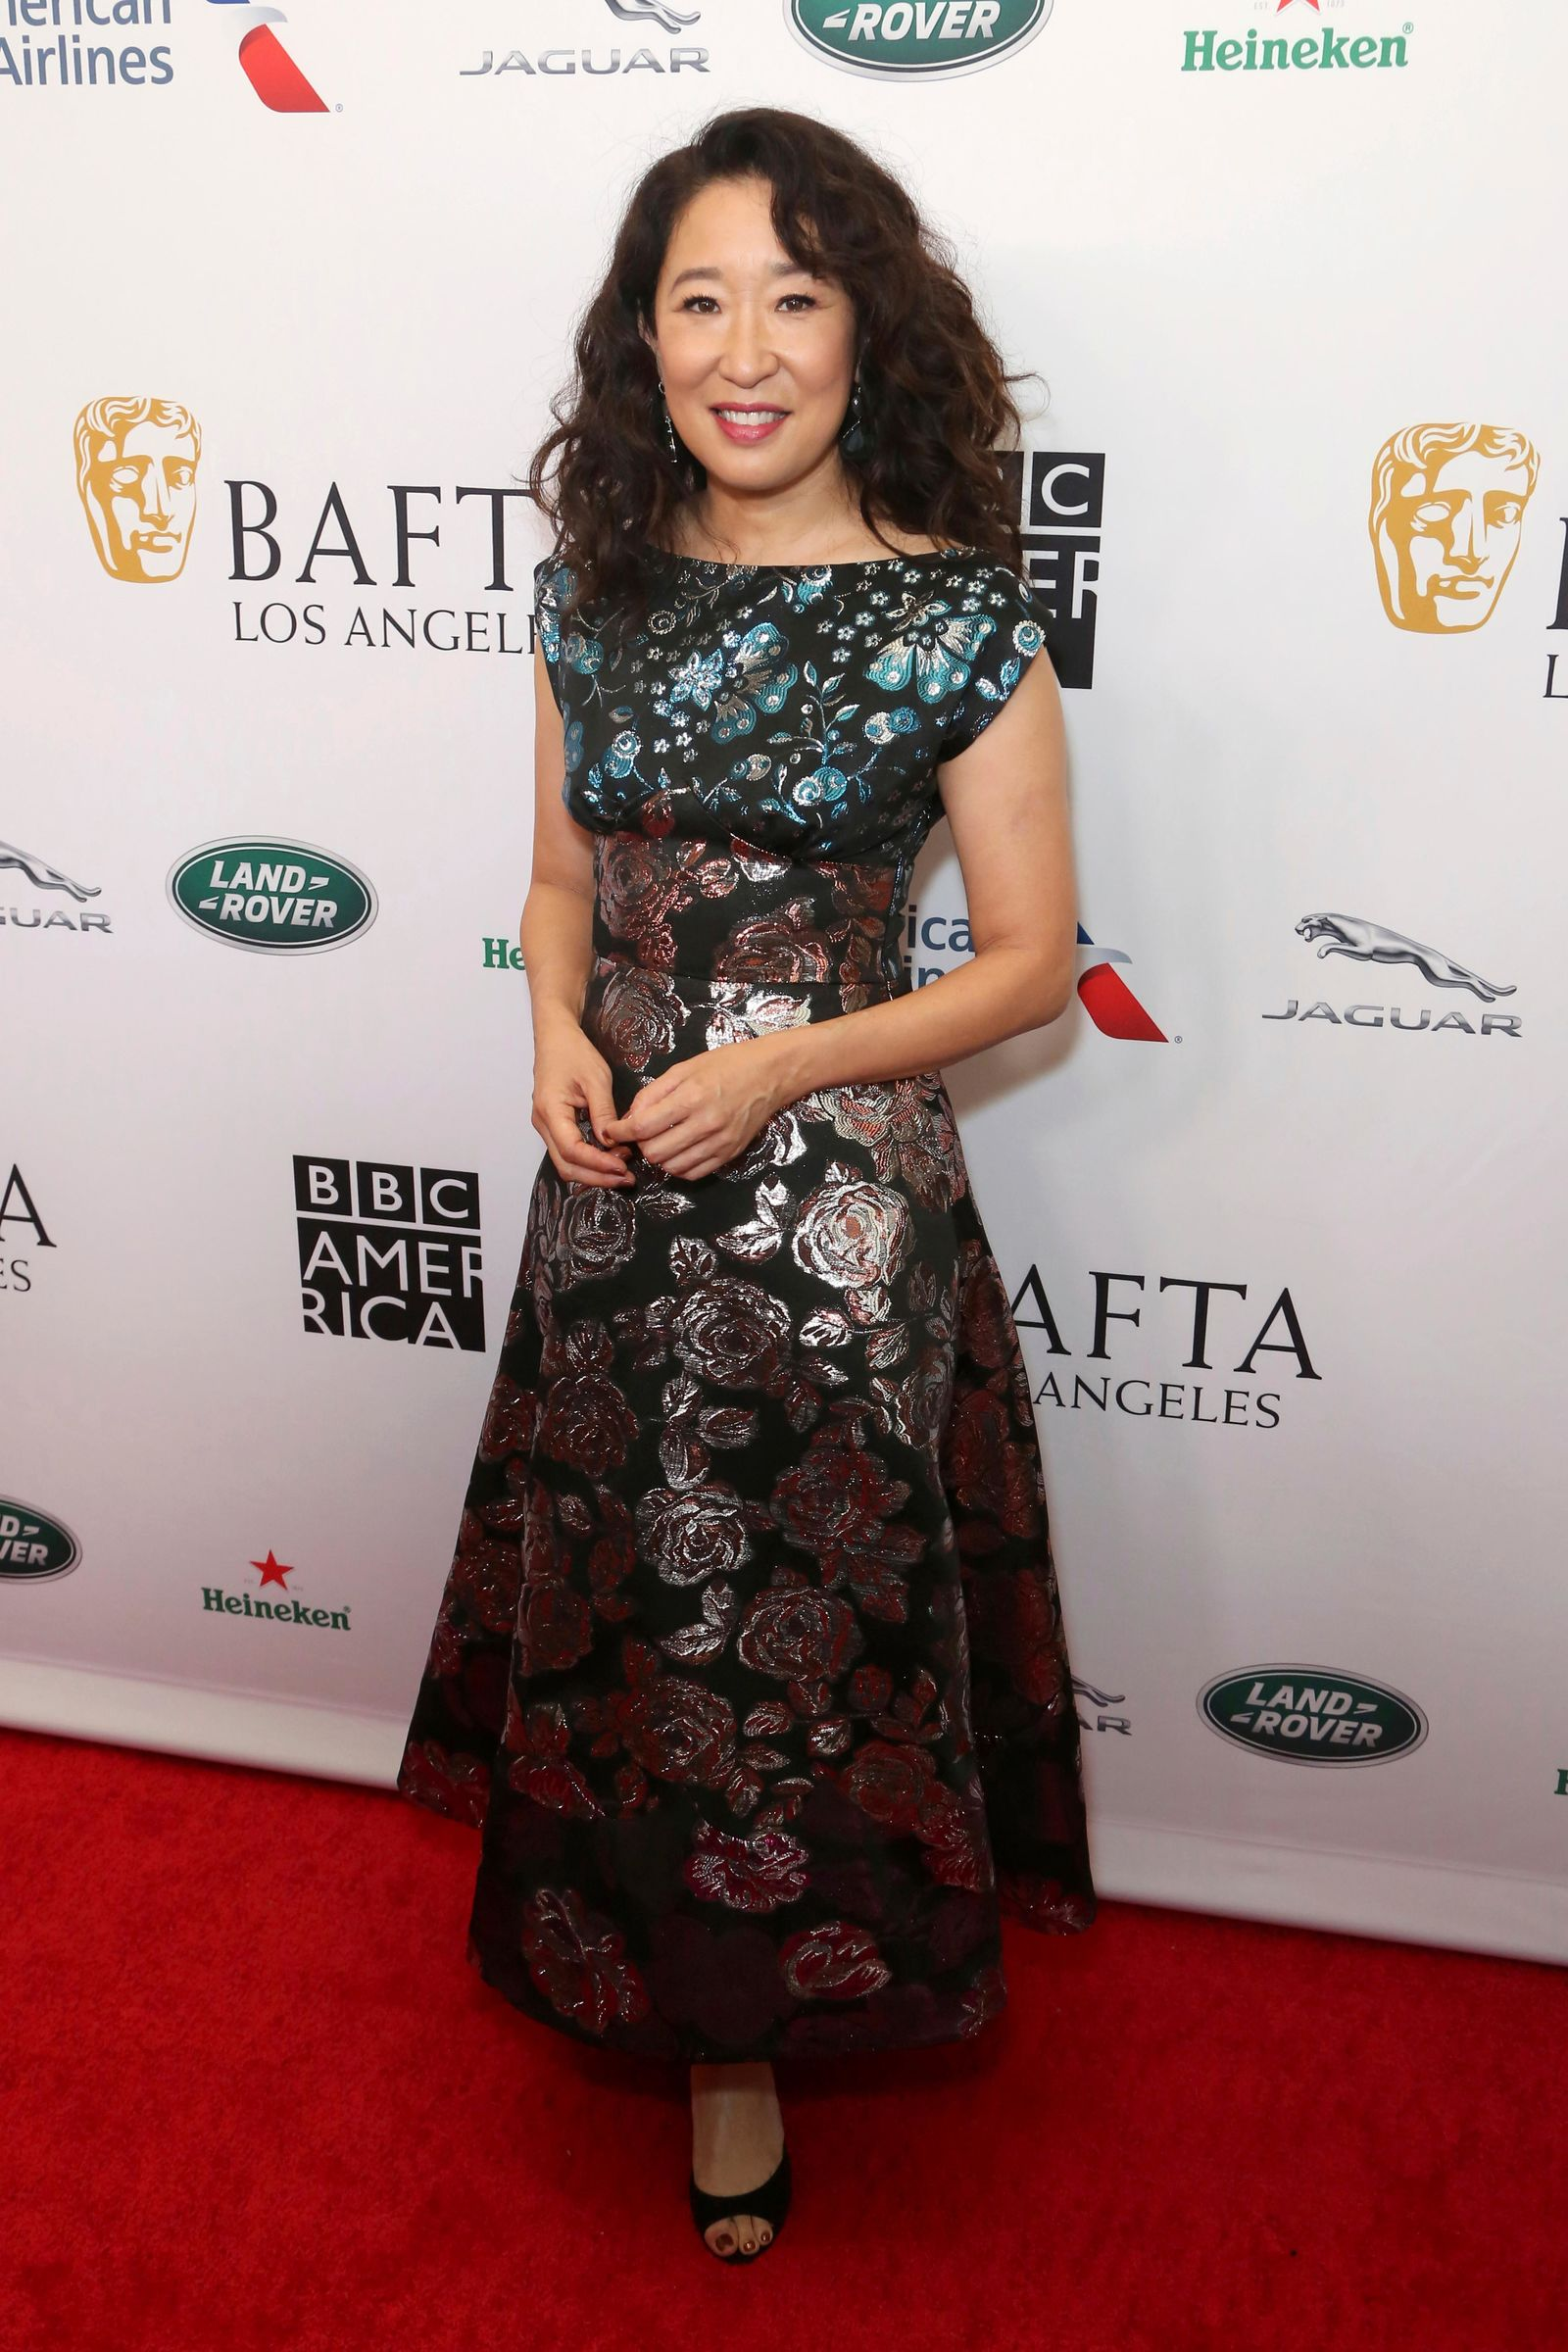 Sandra Oh arrives at the 2019 Primetime Emmy Awards - BAFTA Los Angeles TV Tea Party at the Beverly Hilton on Saturday, Sept. 21, 2019, in Beverly Hills, Calif. (Photo by Willy Sanjuan/Invision/AP)